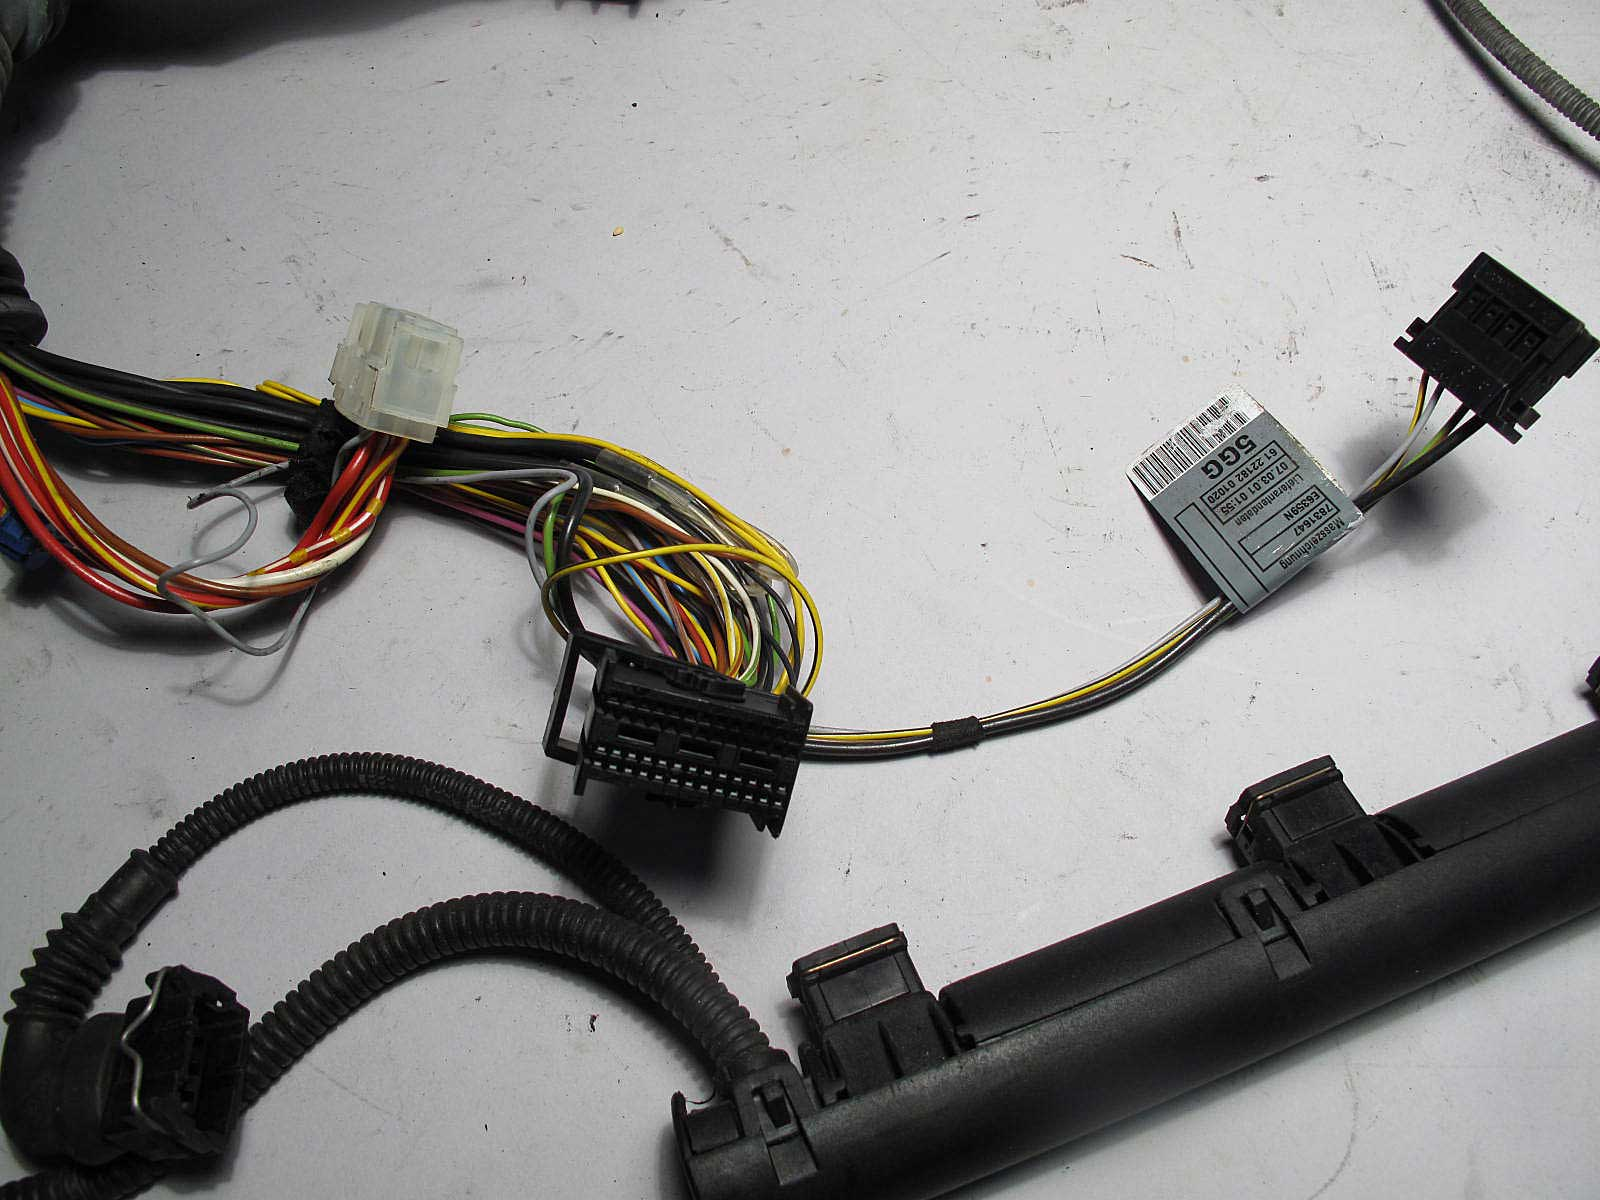 bmw e46 m3 ///m s54 engine wiring harness complete 2001 ... bmw m60 engine wiring harness diagram